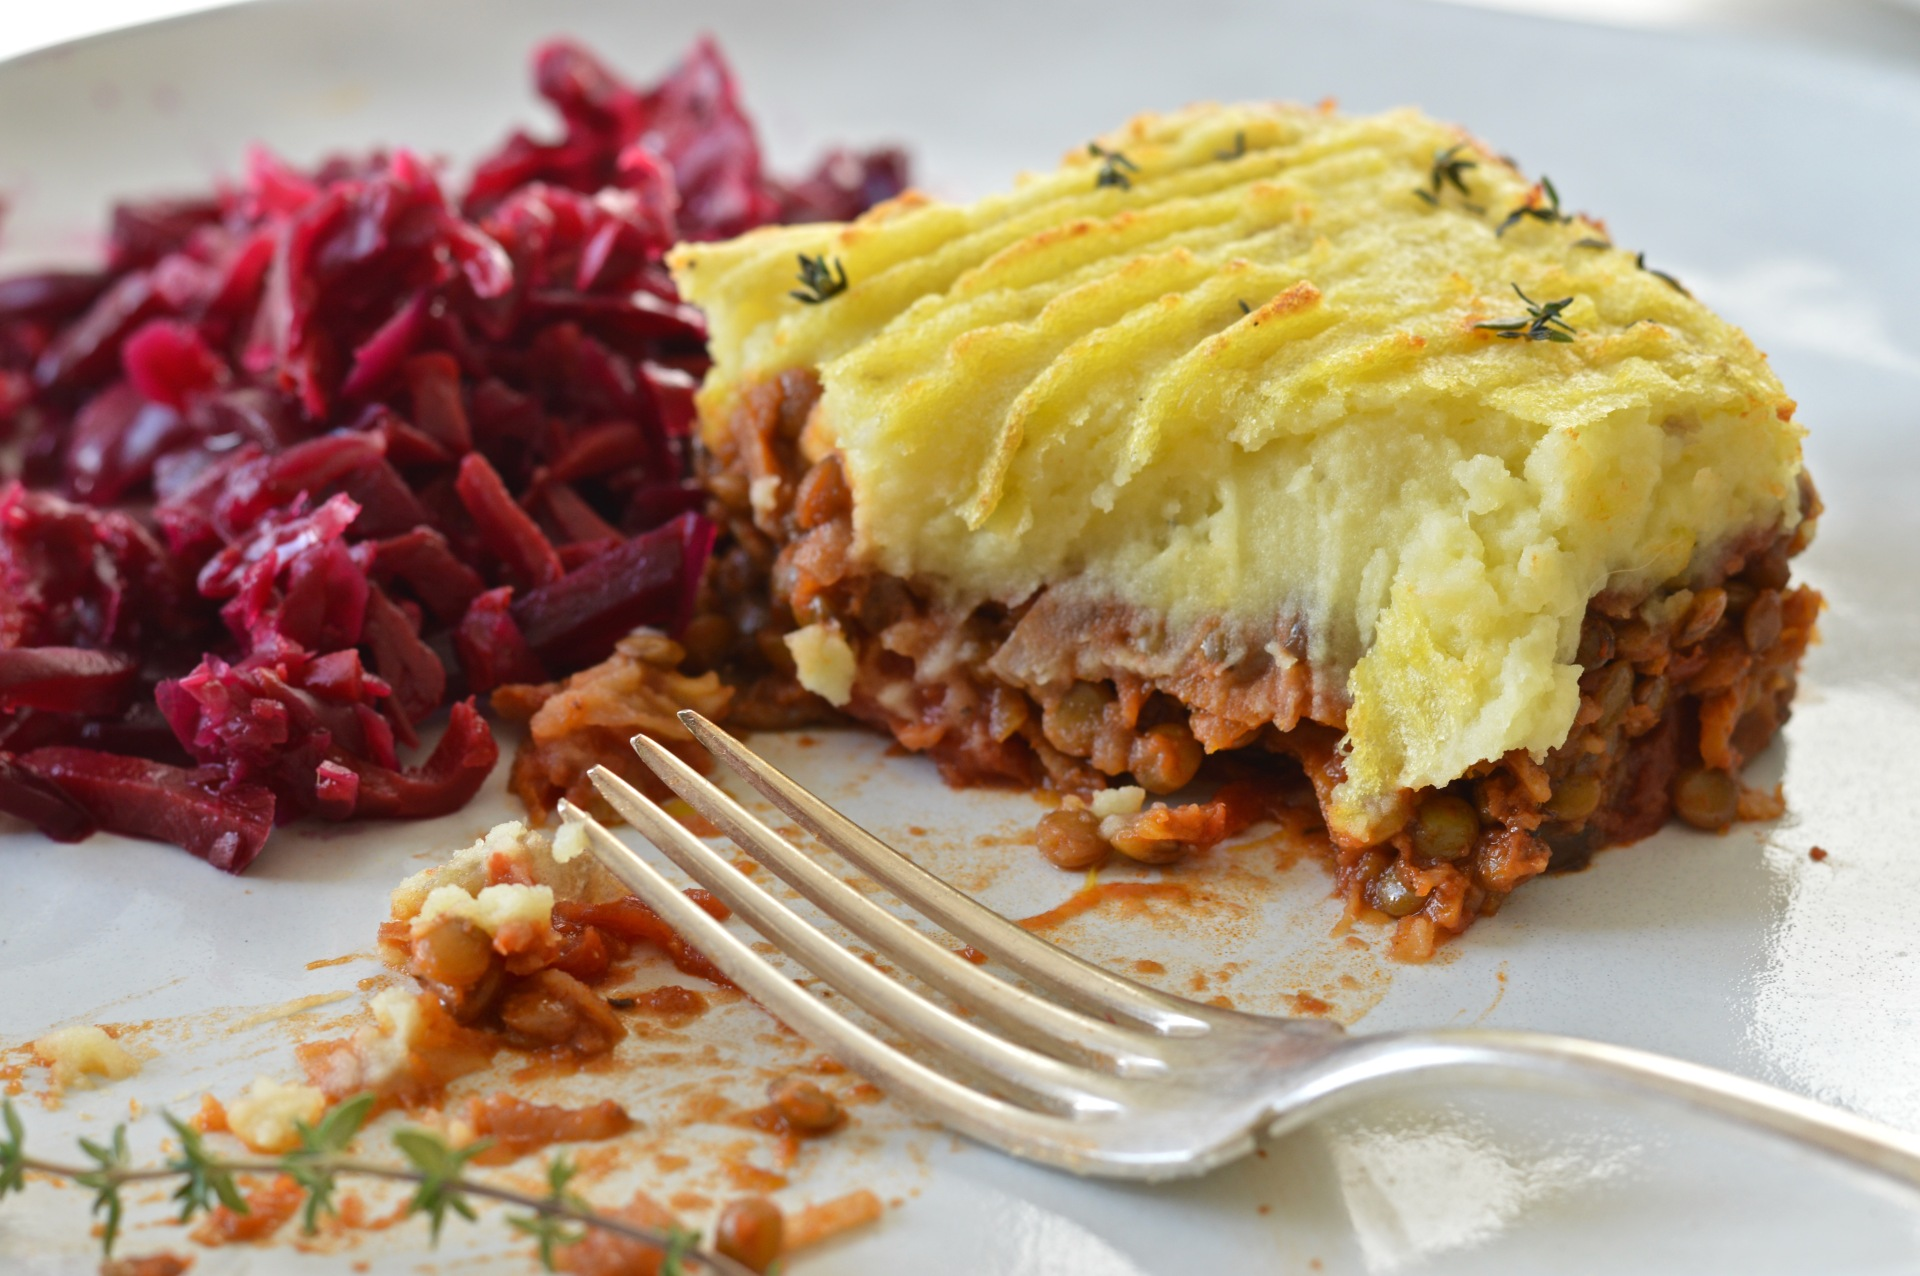 Green lentil shepherd's pie